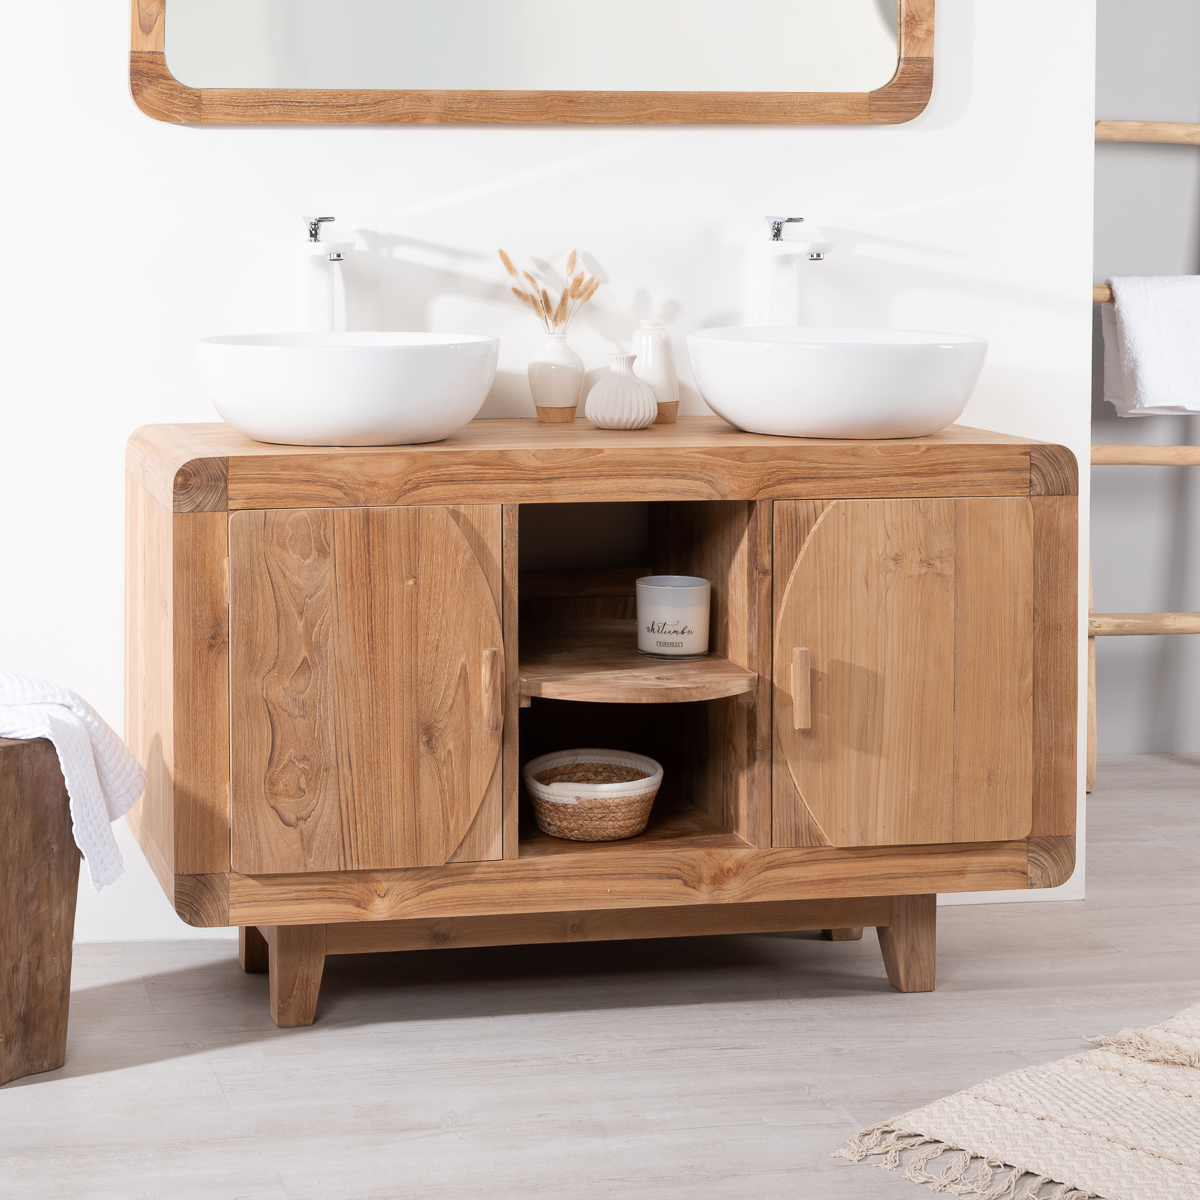 Meuble Sous Vasque Double Vasque En Bois Teck Massif R Tro Rectangle Naturel L 120 Cm